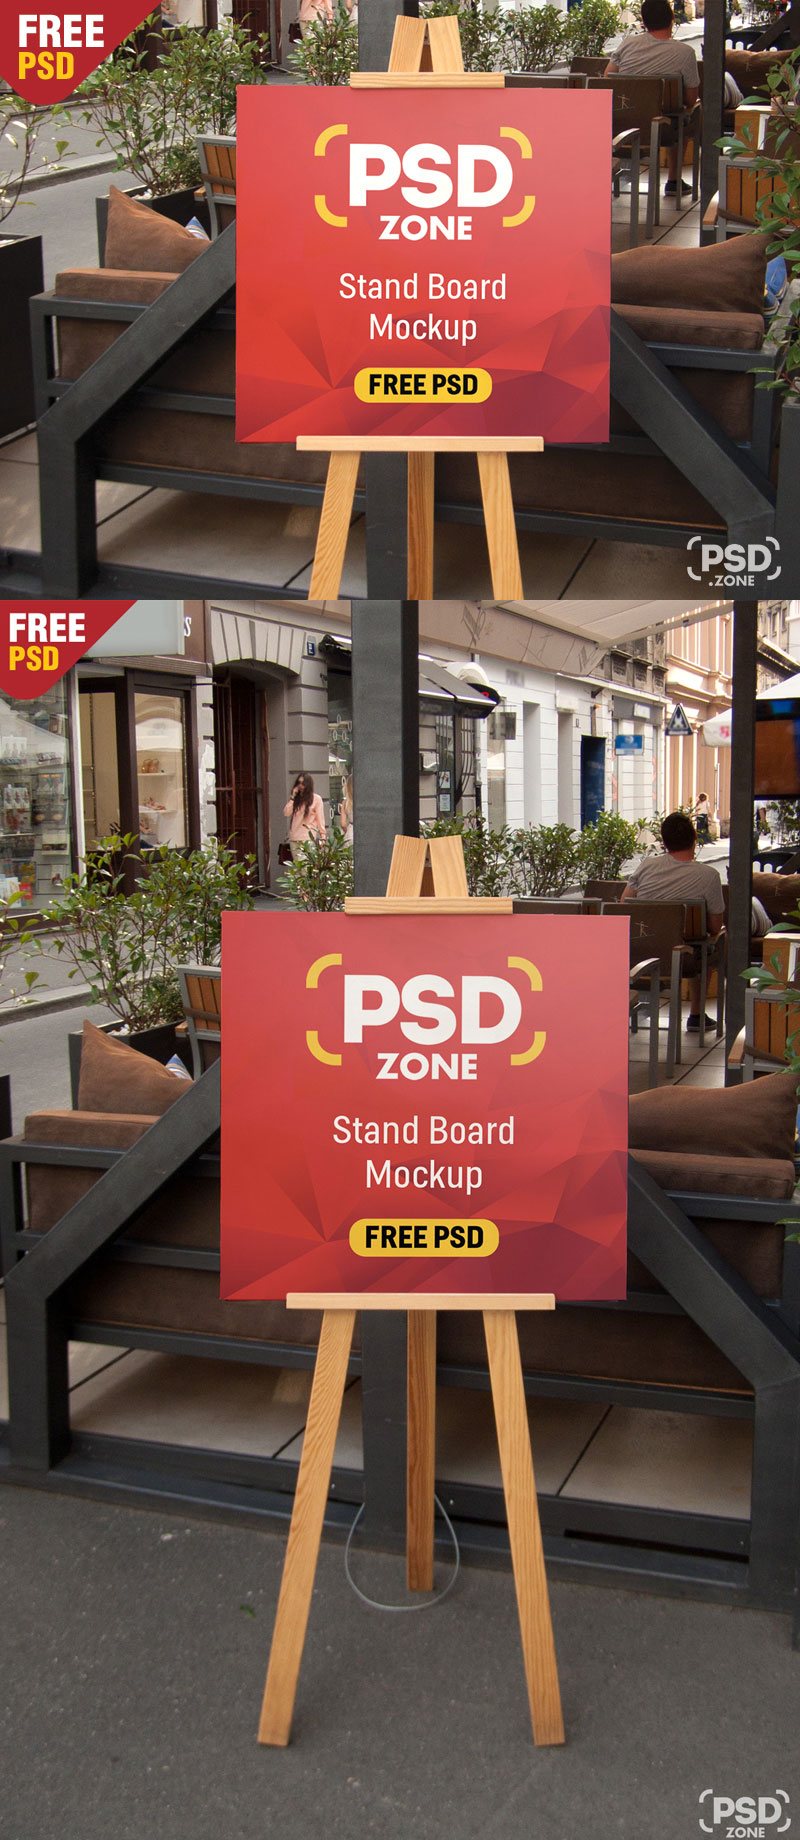 Free-Outdoor-Restaurant-Menu-Stand-Board-Mockup-2018